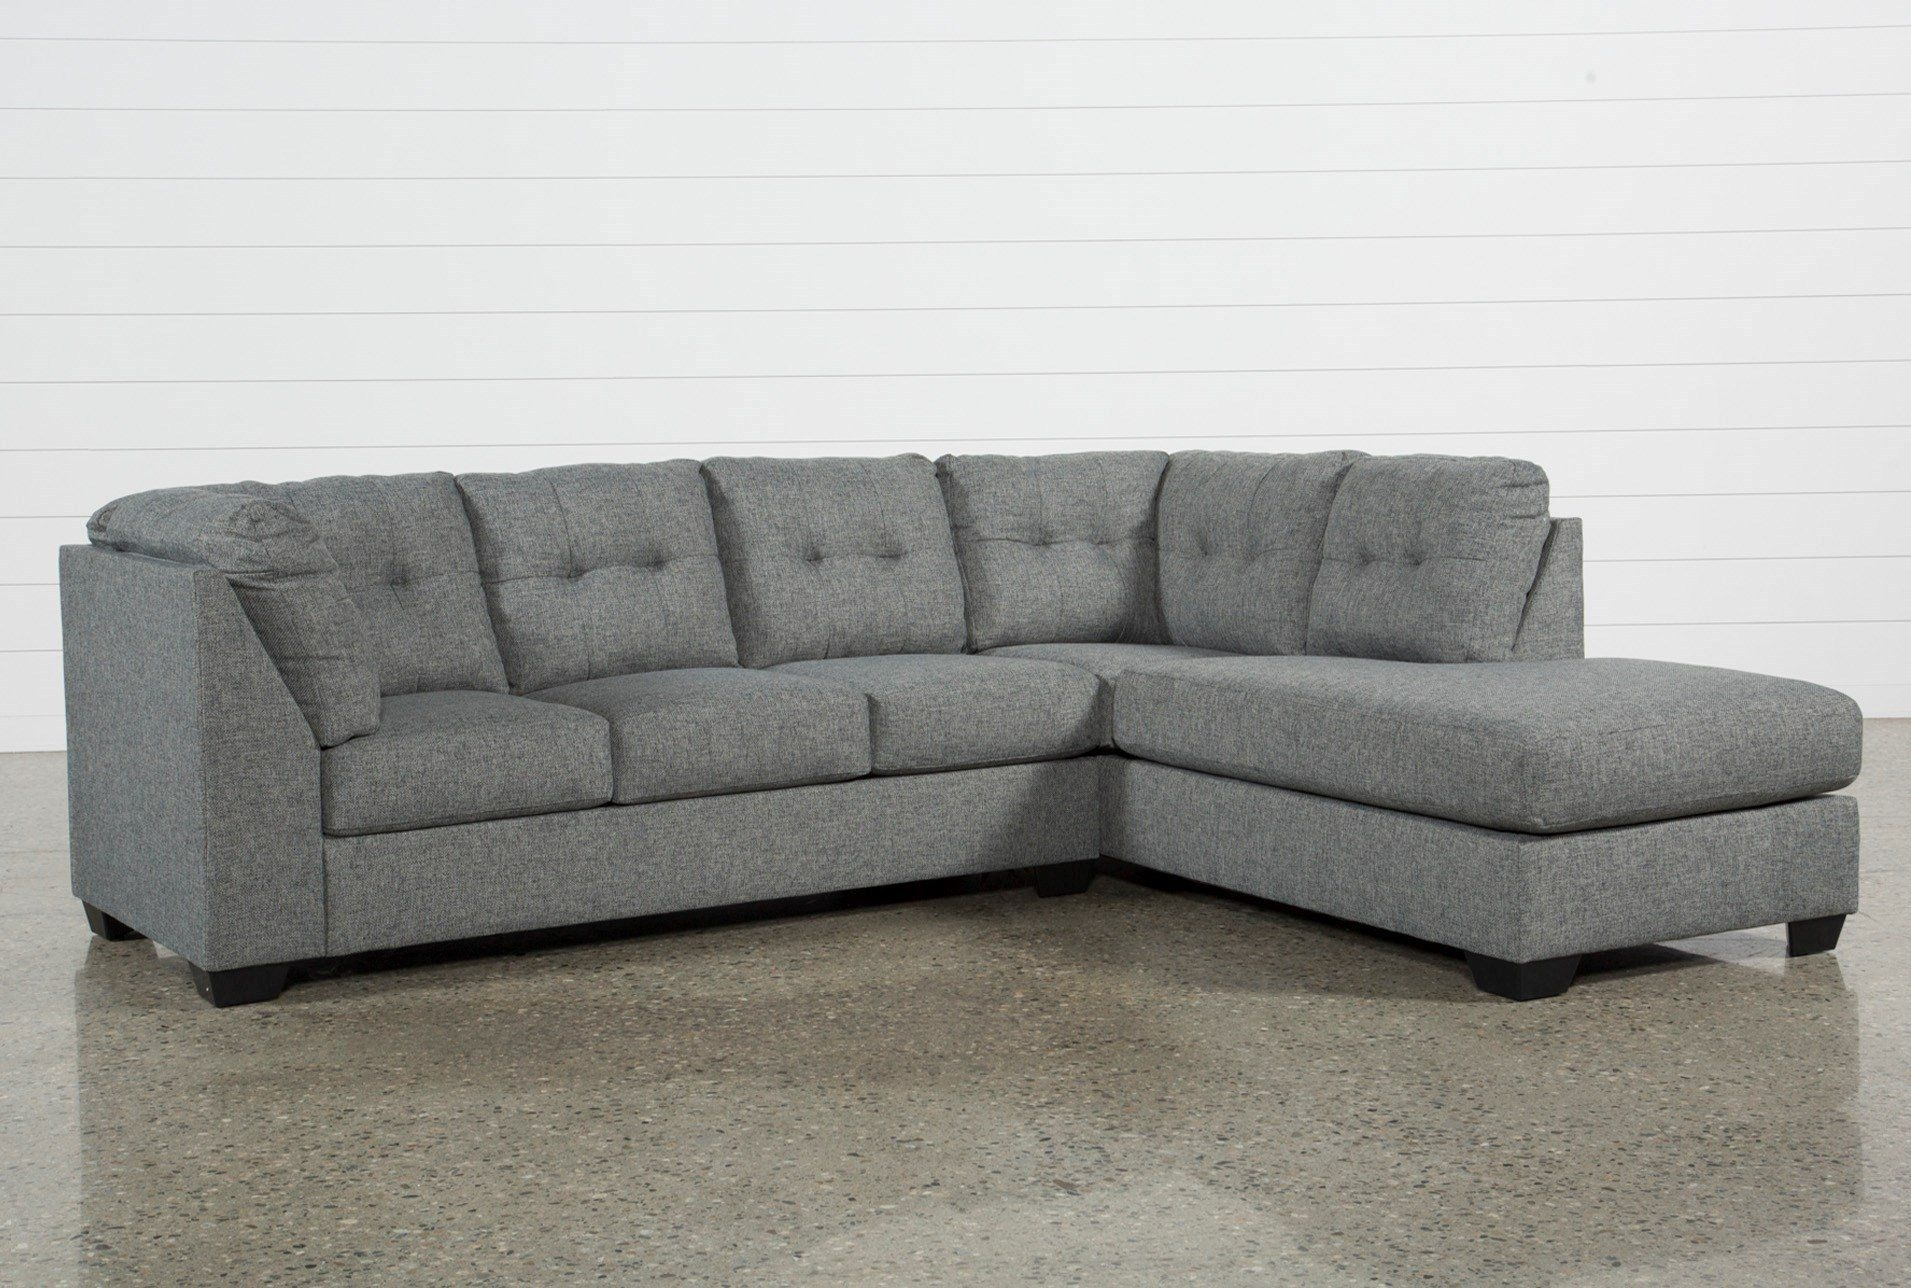 Ashley Arrowmask 2 Piece Sectional W/sleeper & Right Facing Chaise With Aquarius Dark Grey 2 Piece Sectionals With Laf Chaise (View 9 of 25)